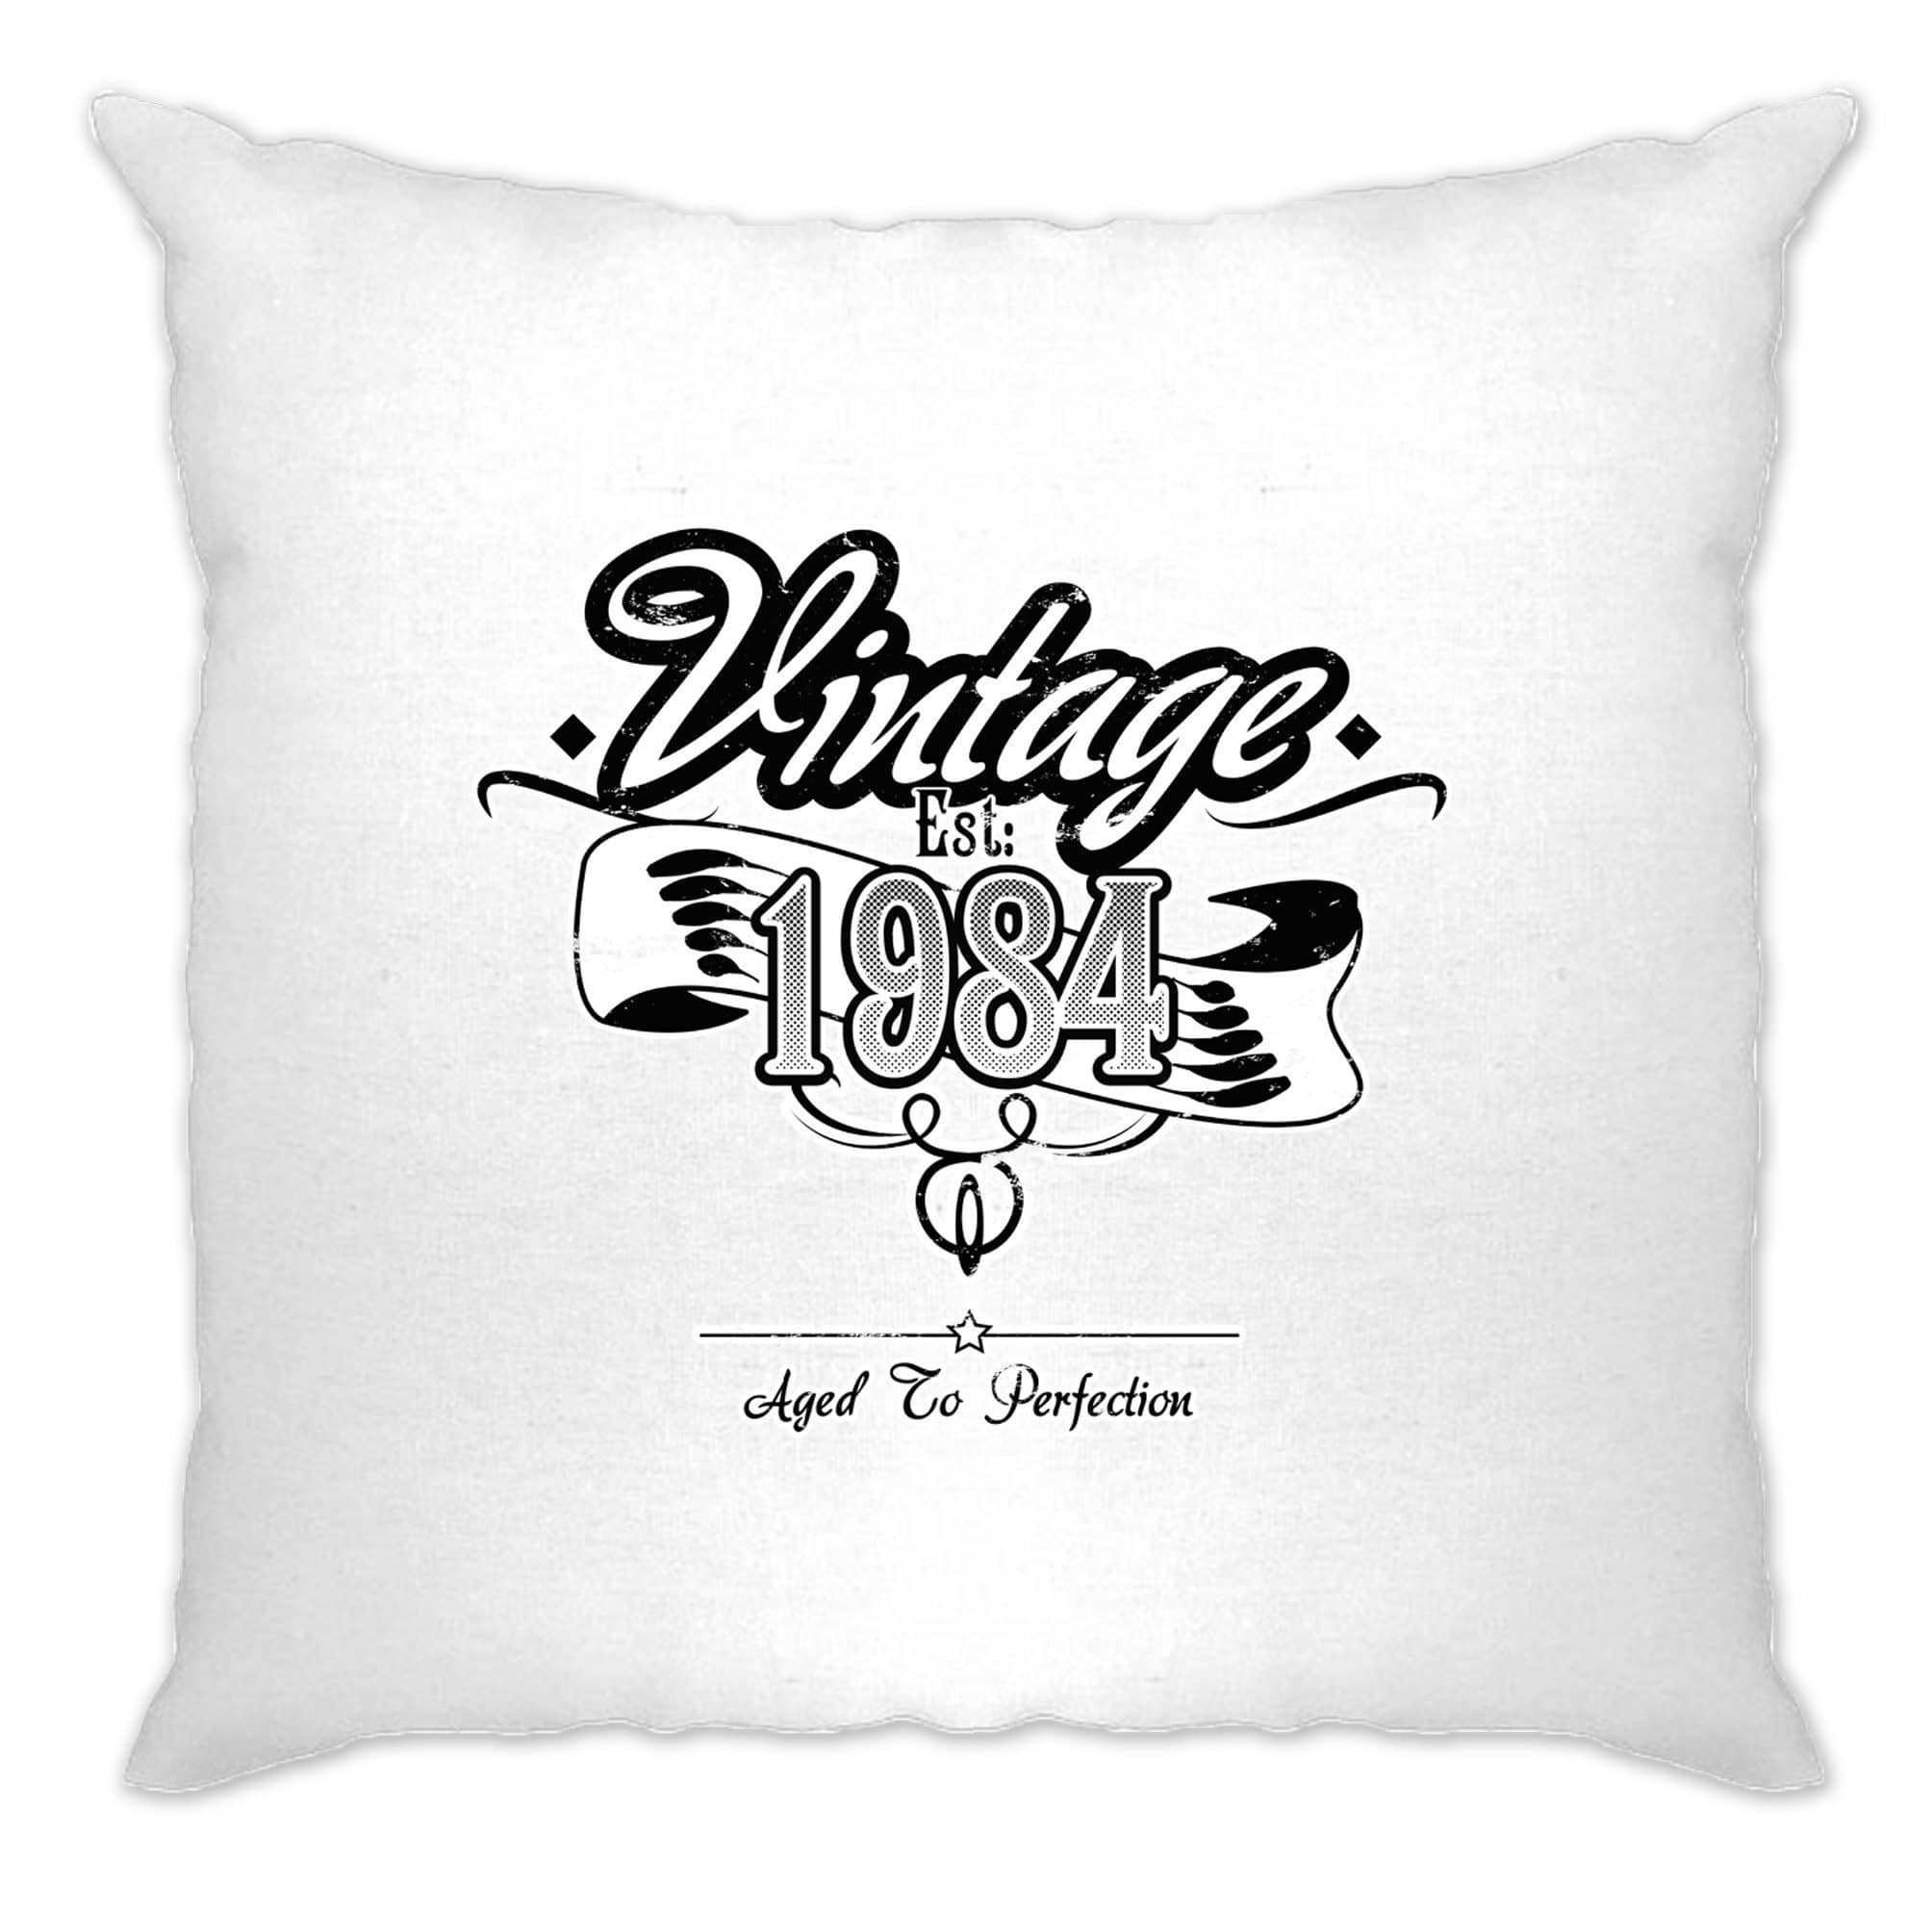 Birthday Cushion Cover Vintage Est 1984 Aged To Perfection